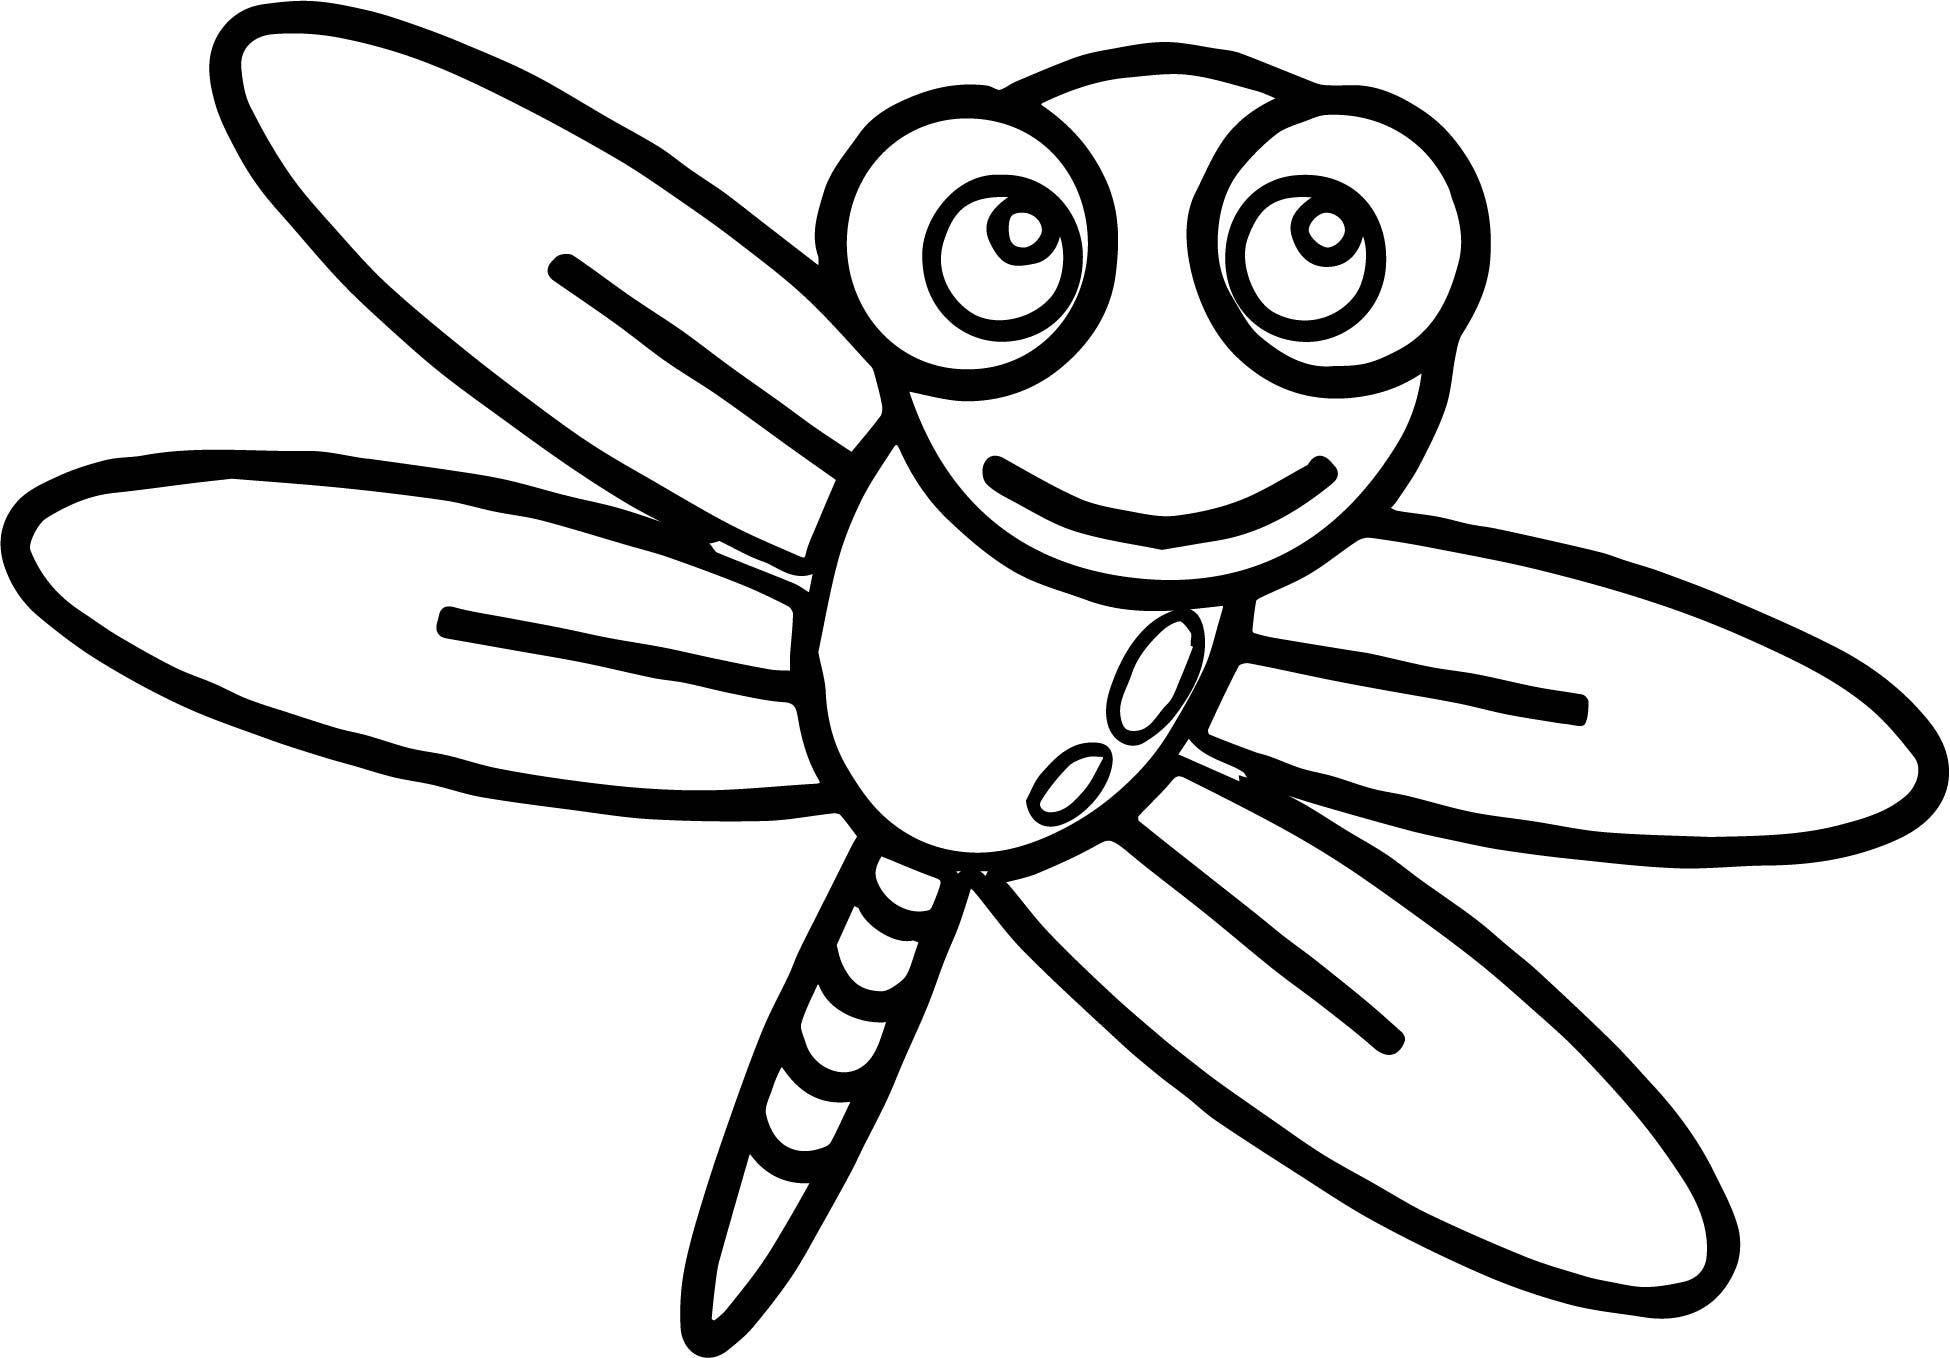 Cool Insect Fly Coloring Page Coloring Pages Happy Birthday Coloring Pages Birthday Coloring Pages [ 1358 x 1950 Pixel ]